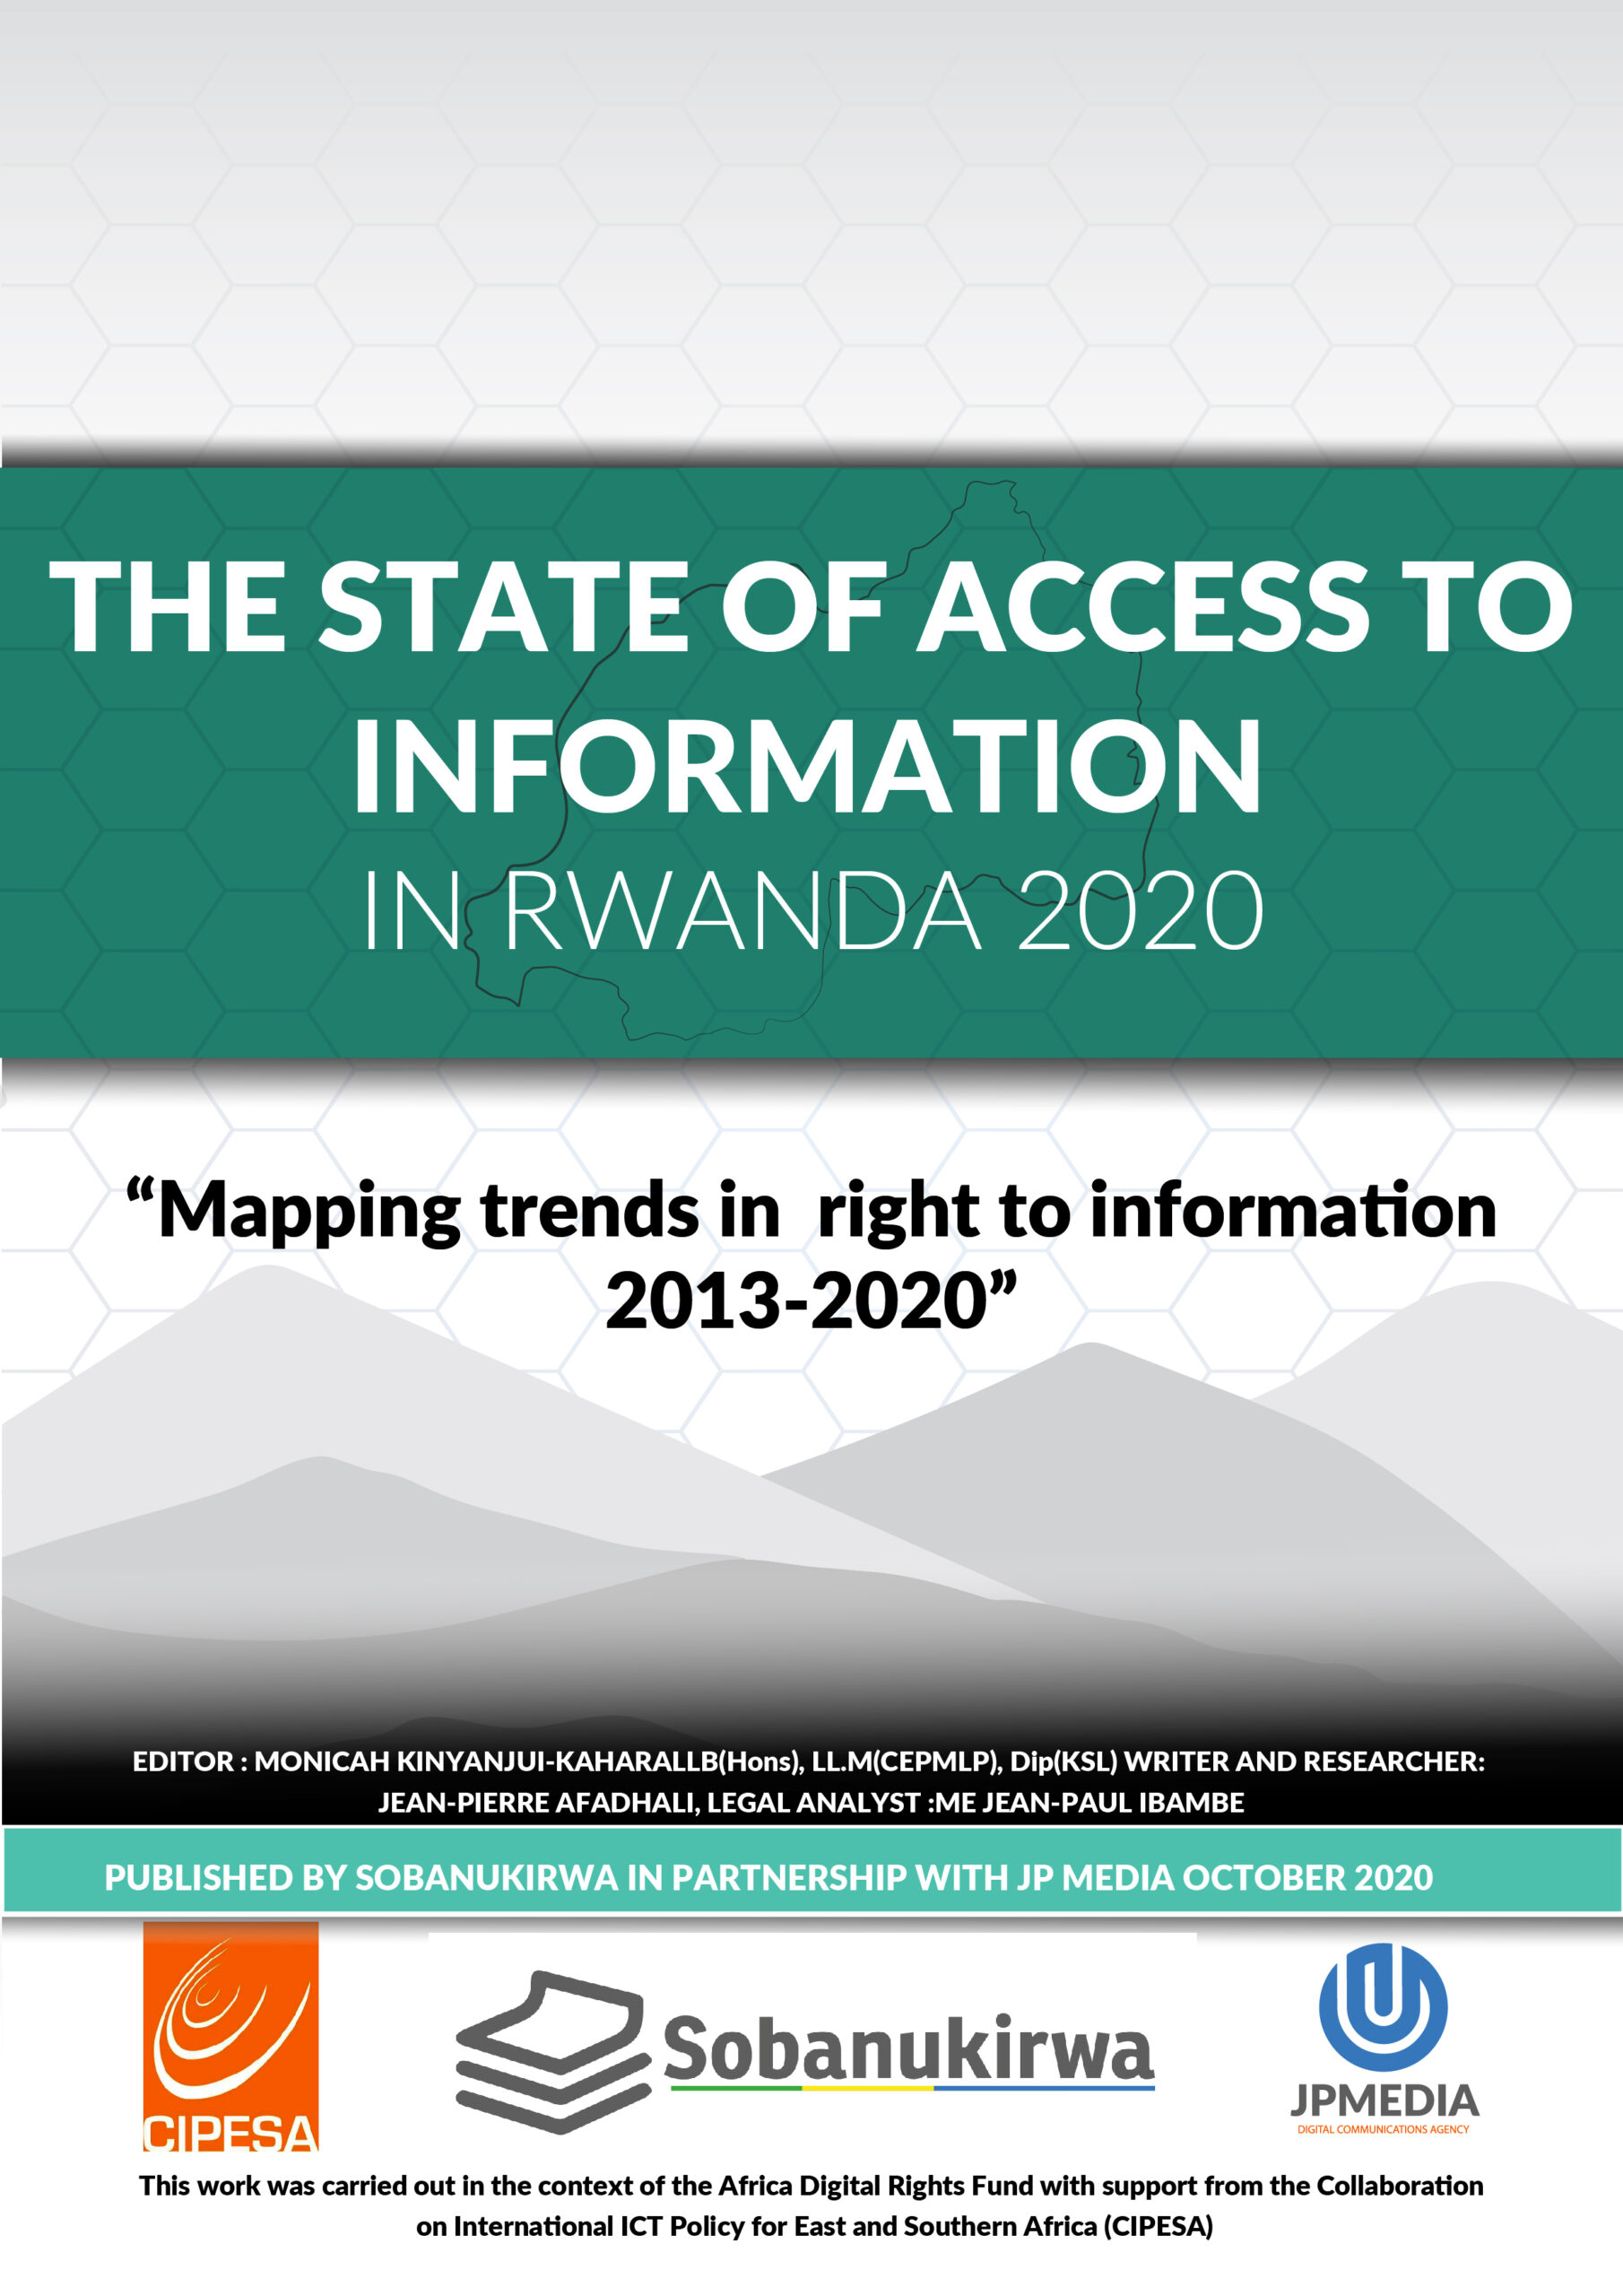 Access to the information